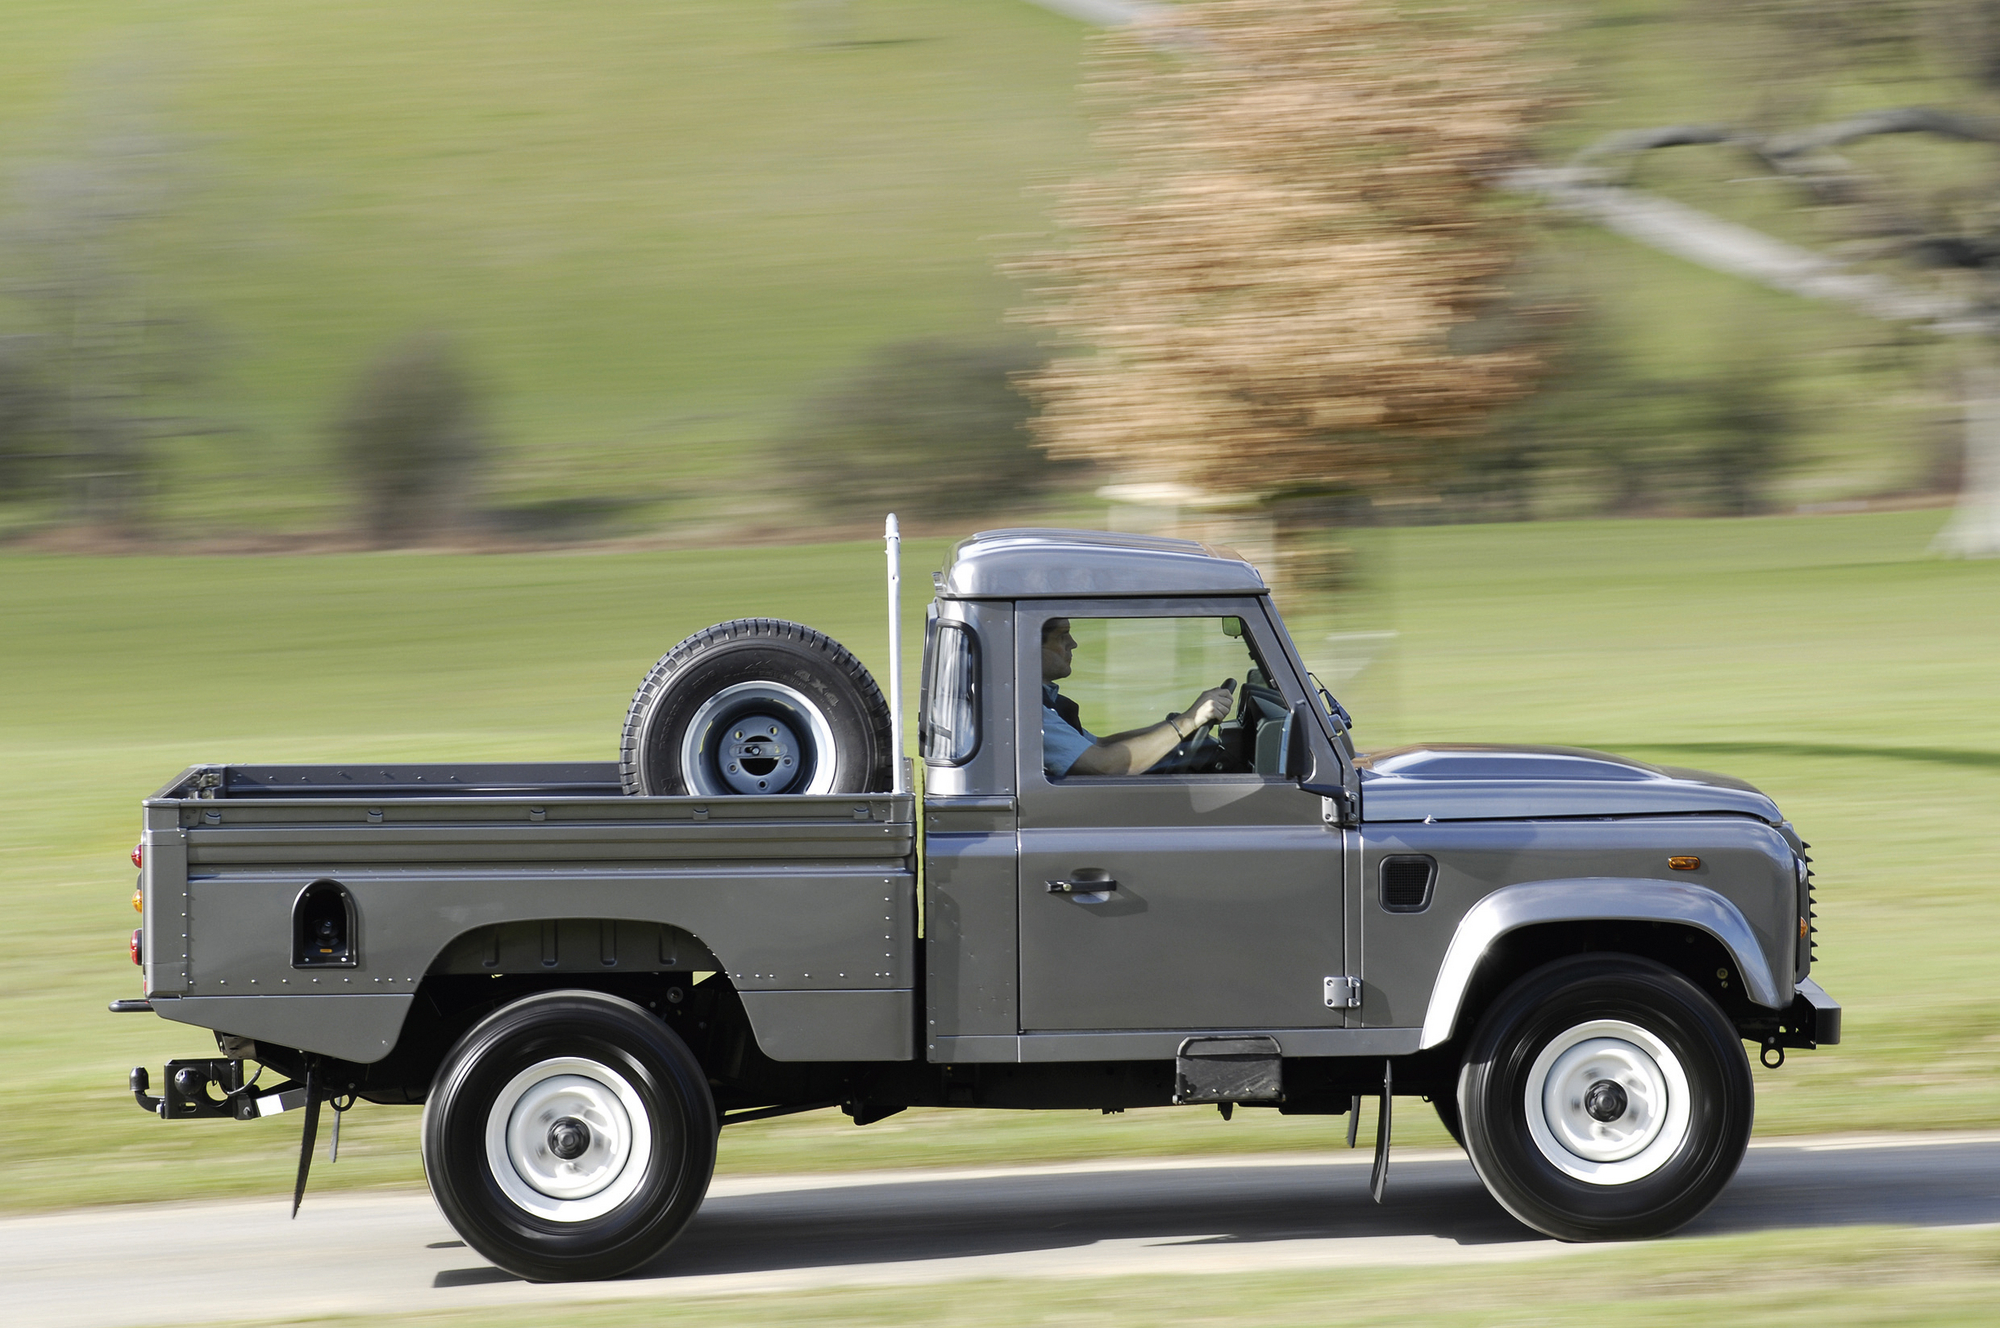 Land Rover Defender 110 Pick Up High Capacity Slideshow